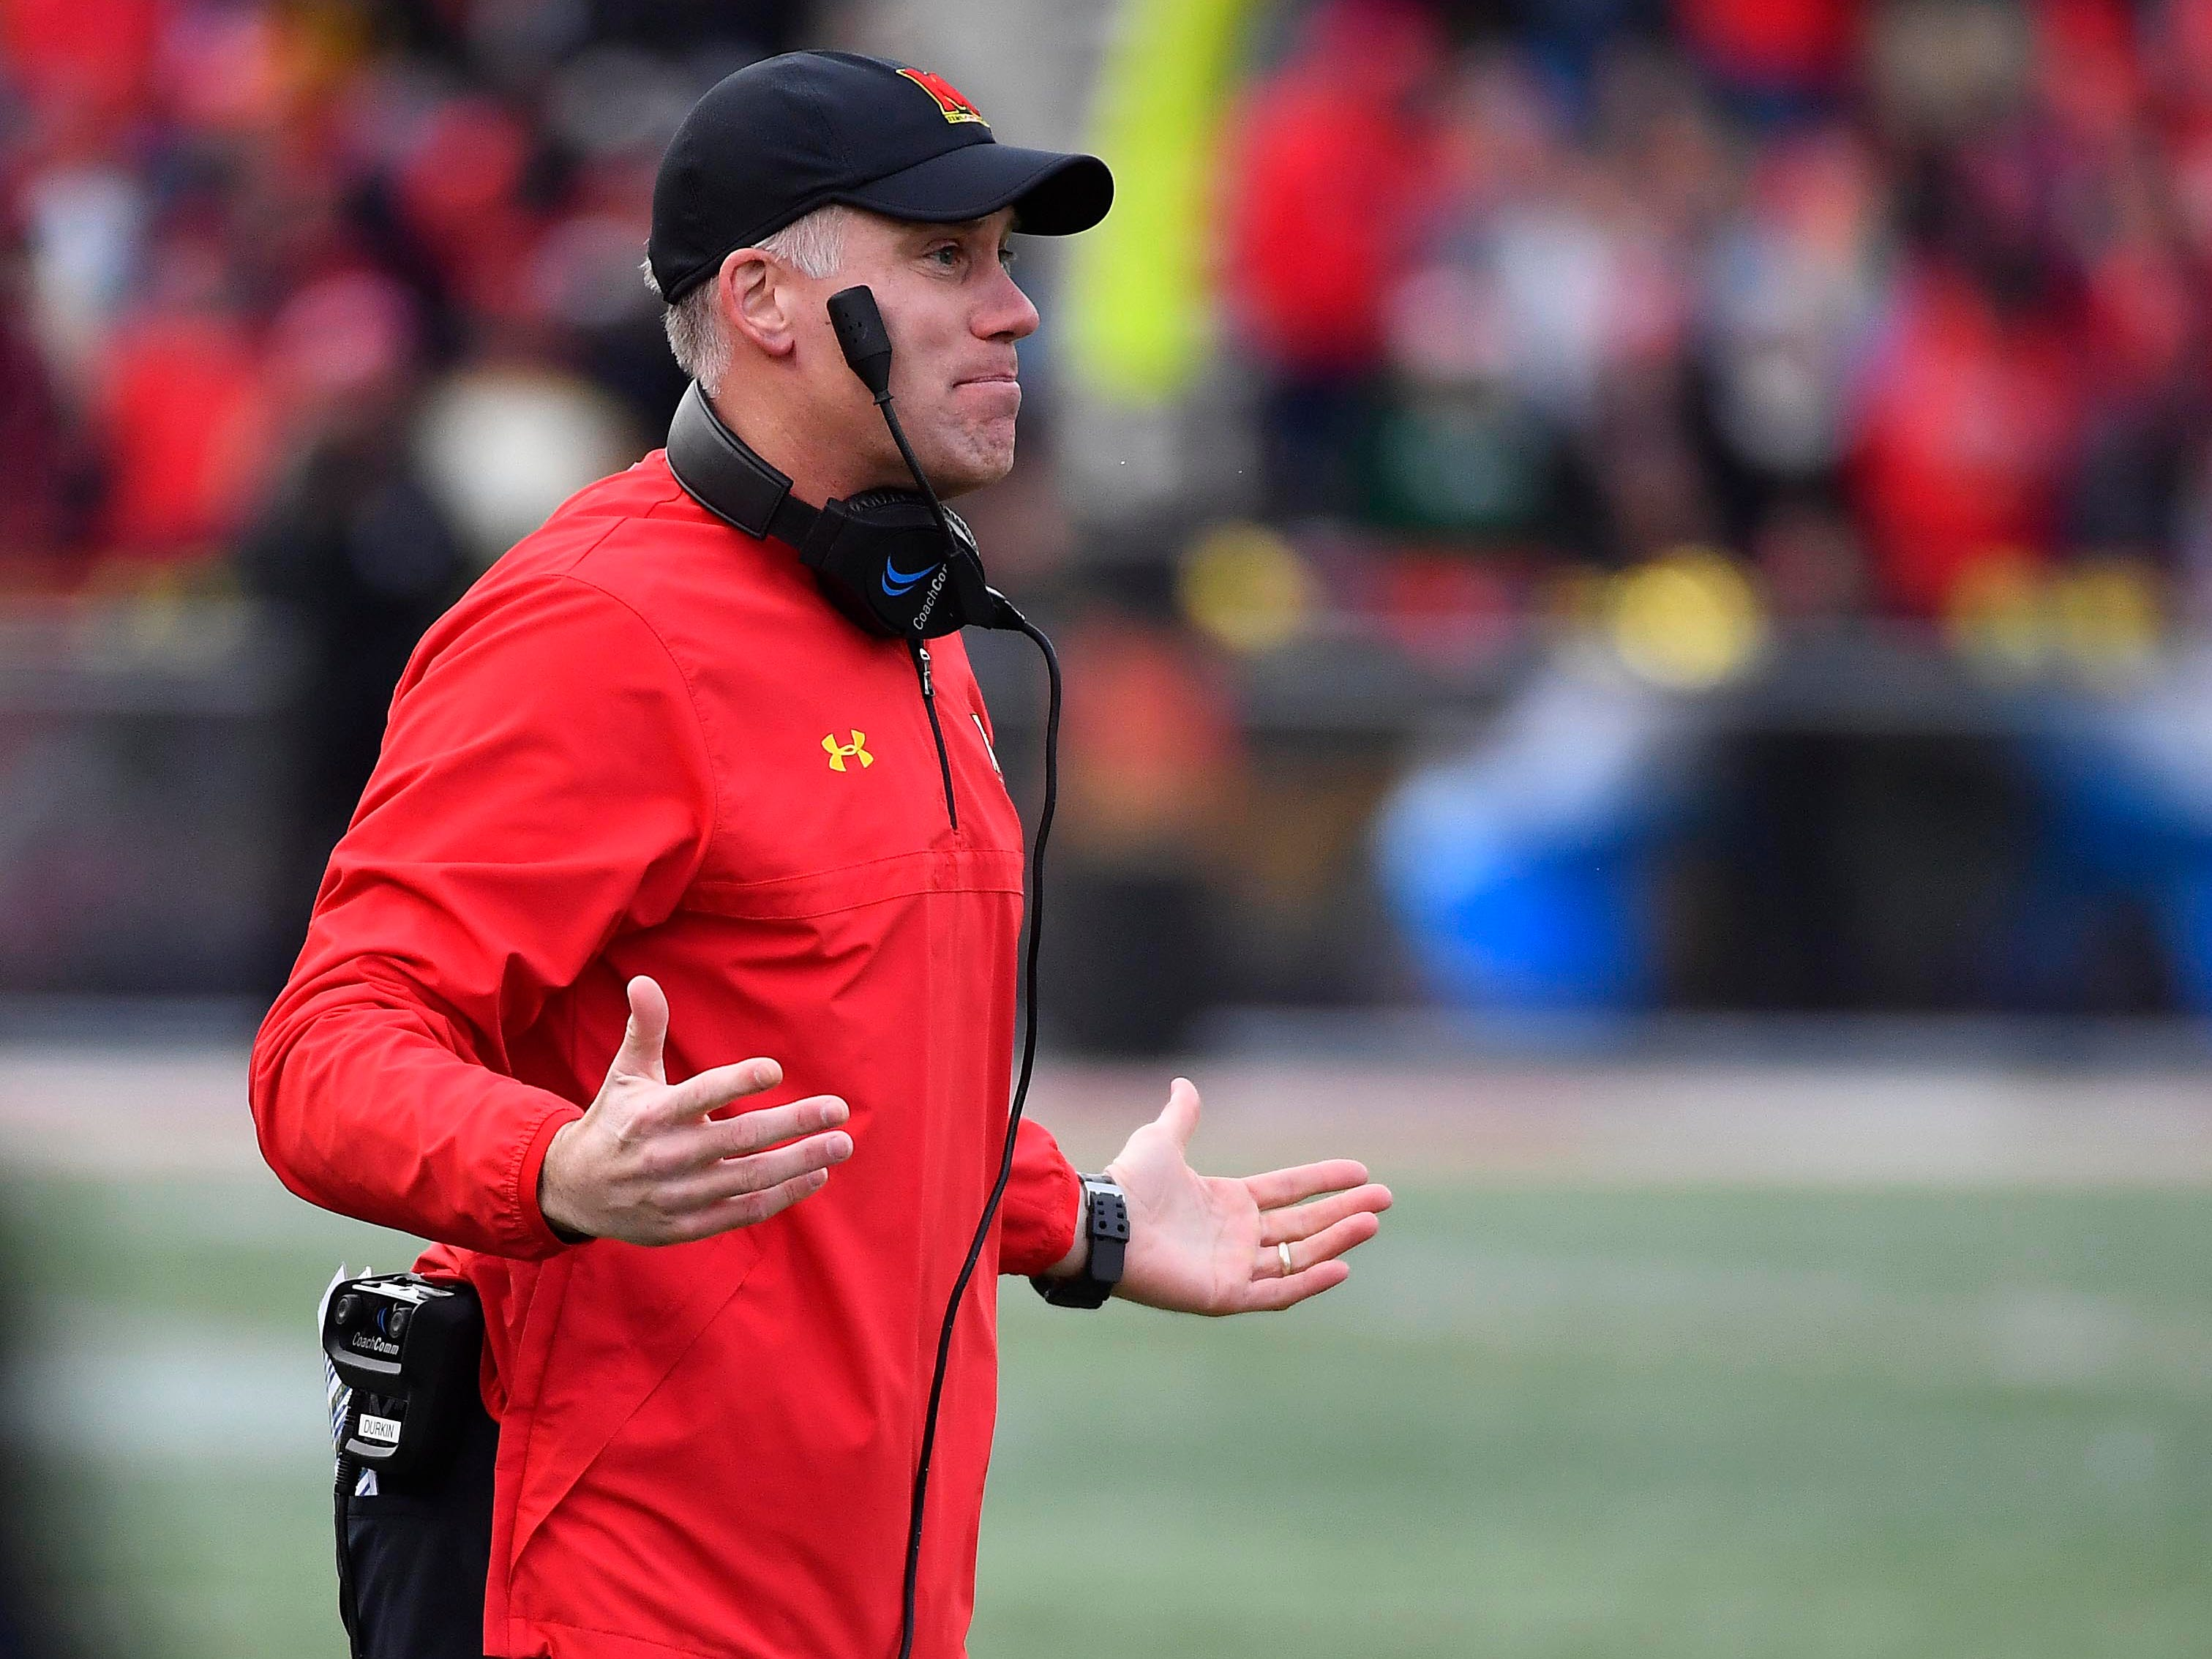 DJ Durkin, who is on leave, during a 2017 game.